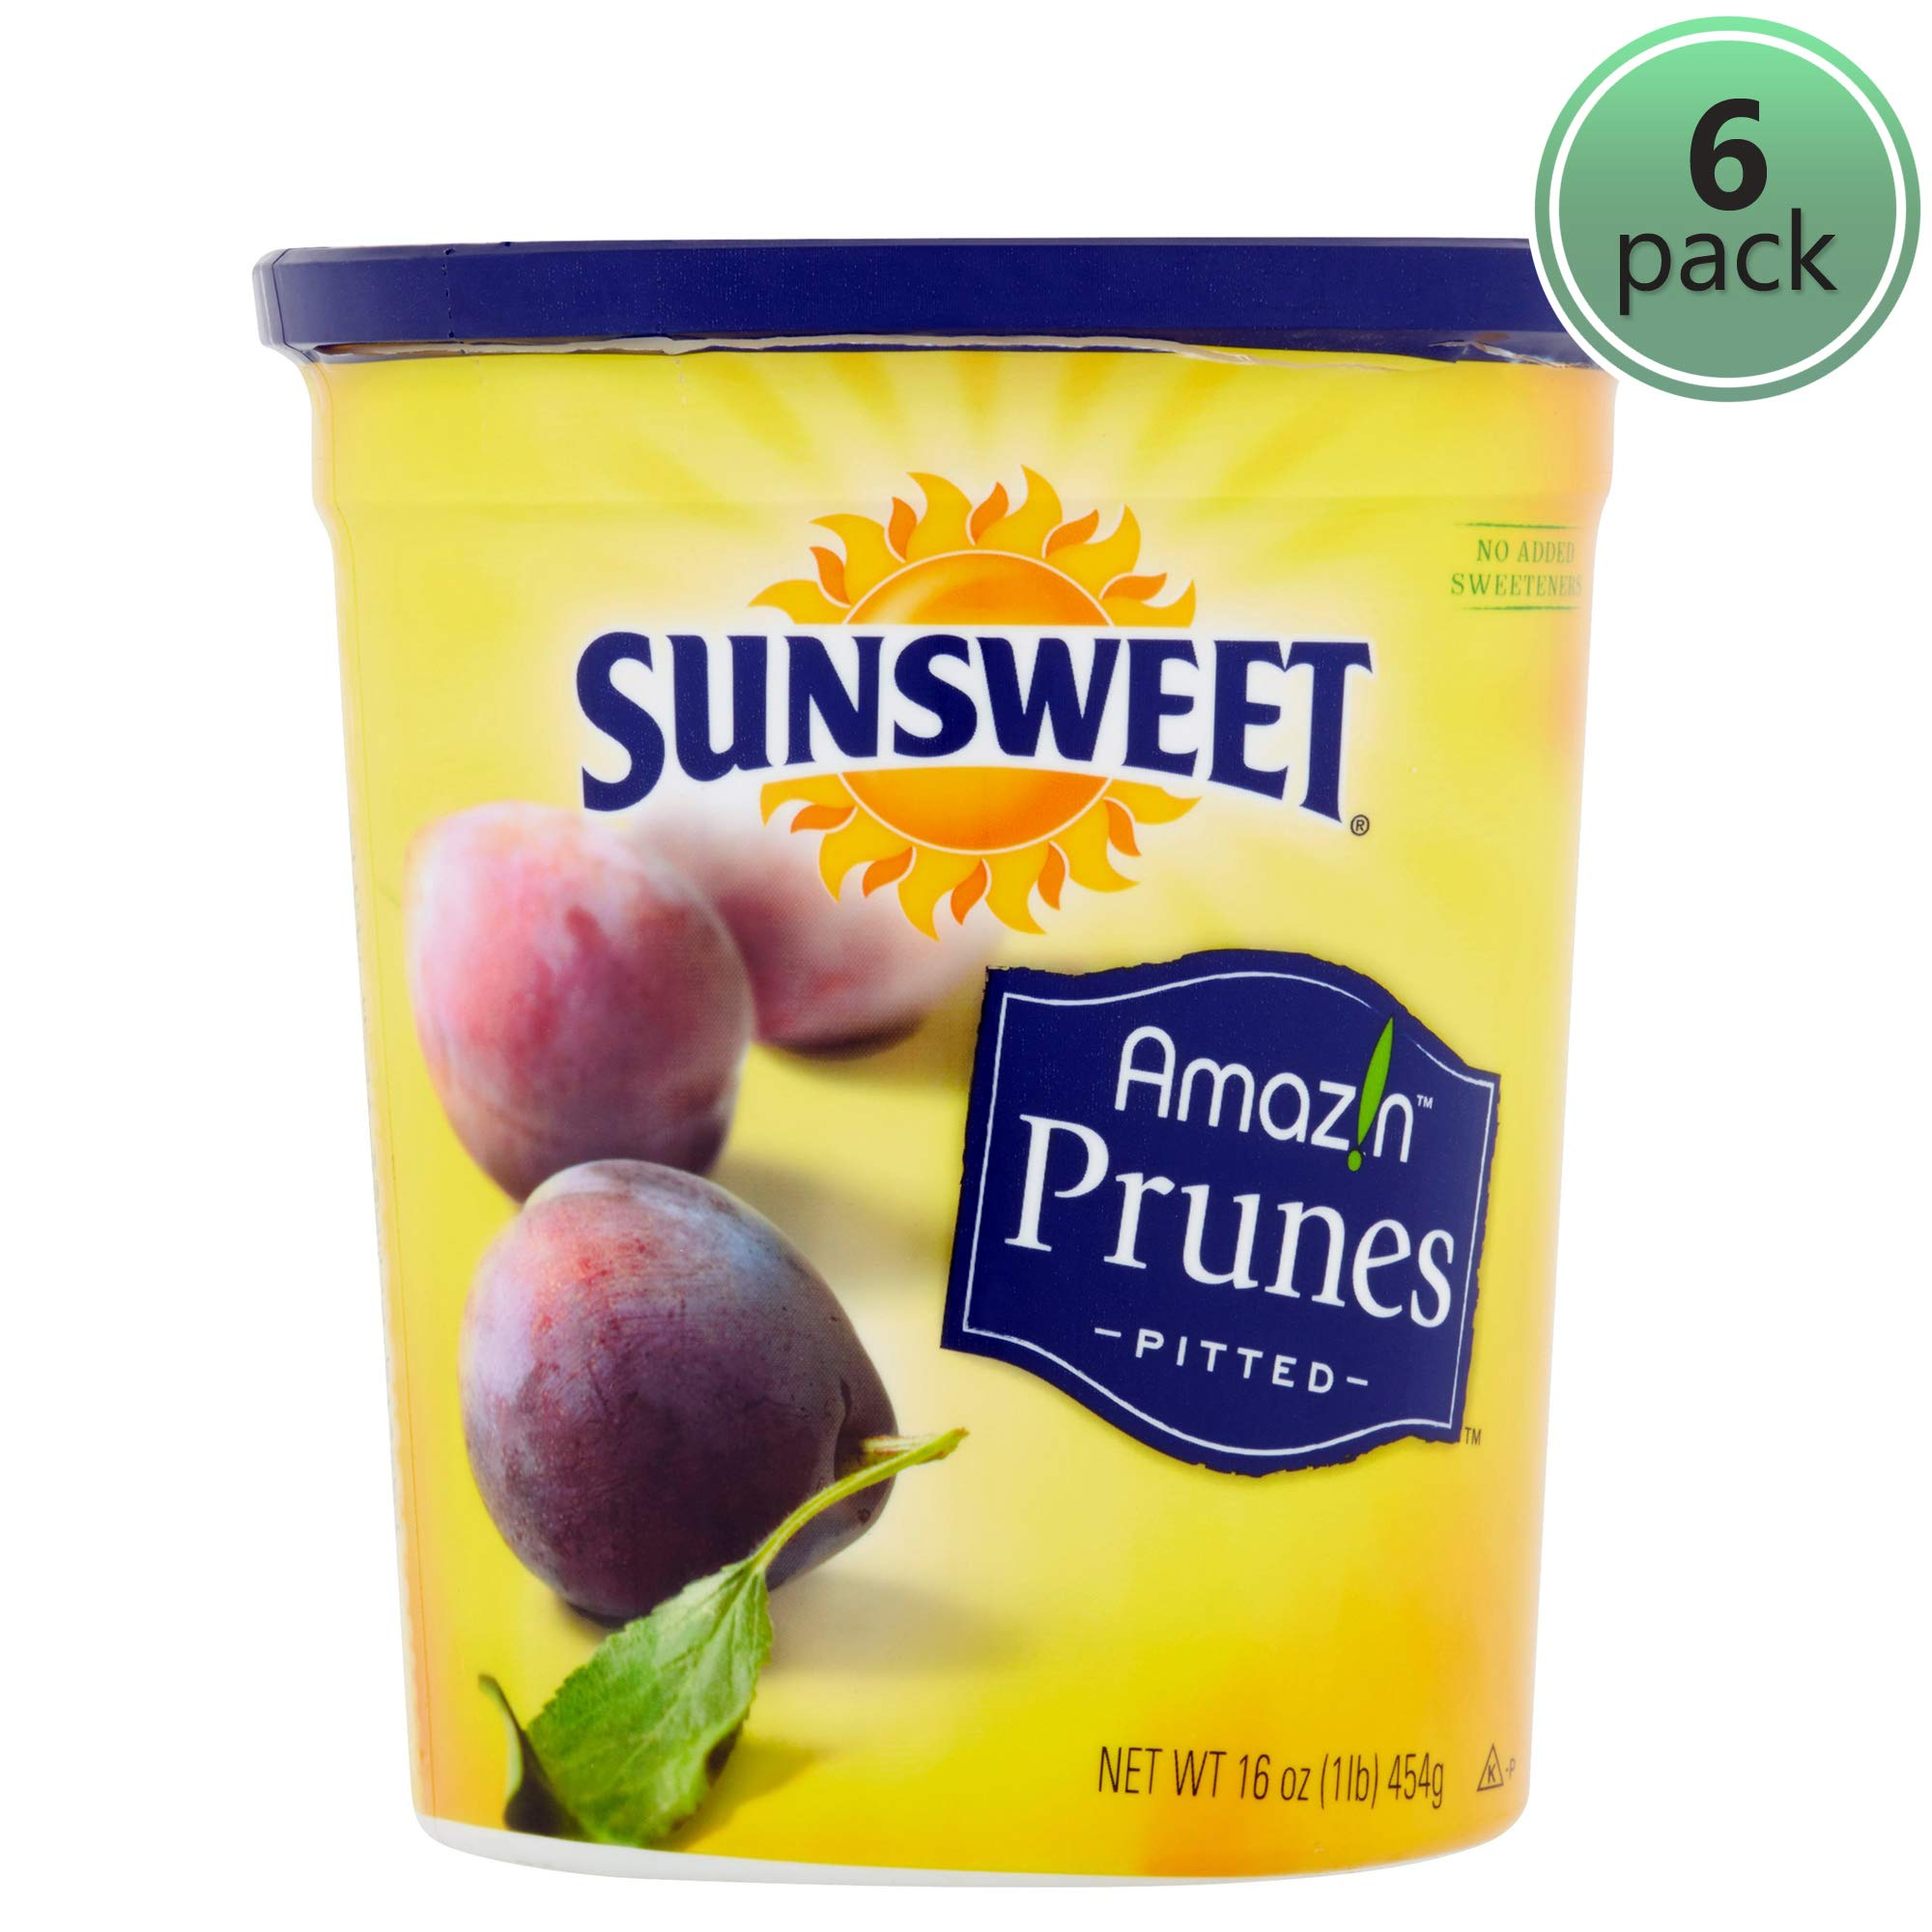 SUNSWEET Amazin Pitted Prunes, 16 oz - Pack of 6 by Sunsweet